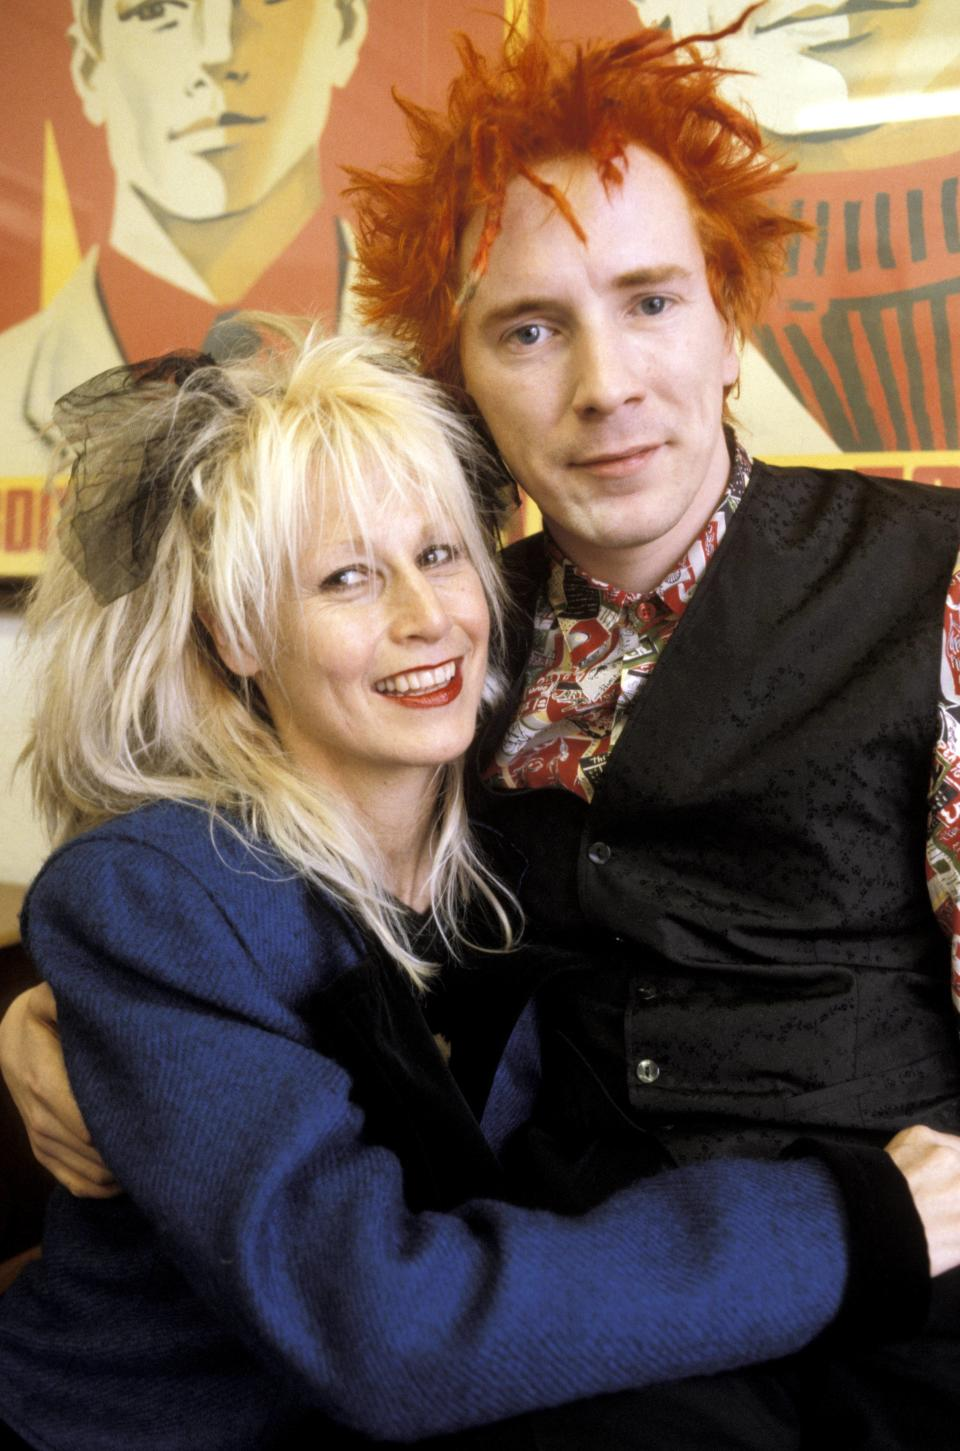 John Lydon posing with his wife Nora Forster. (Photo by Fin Costello/Redferns)